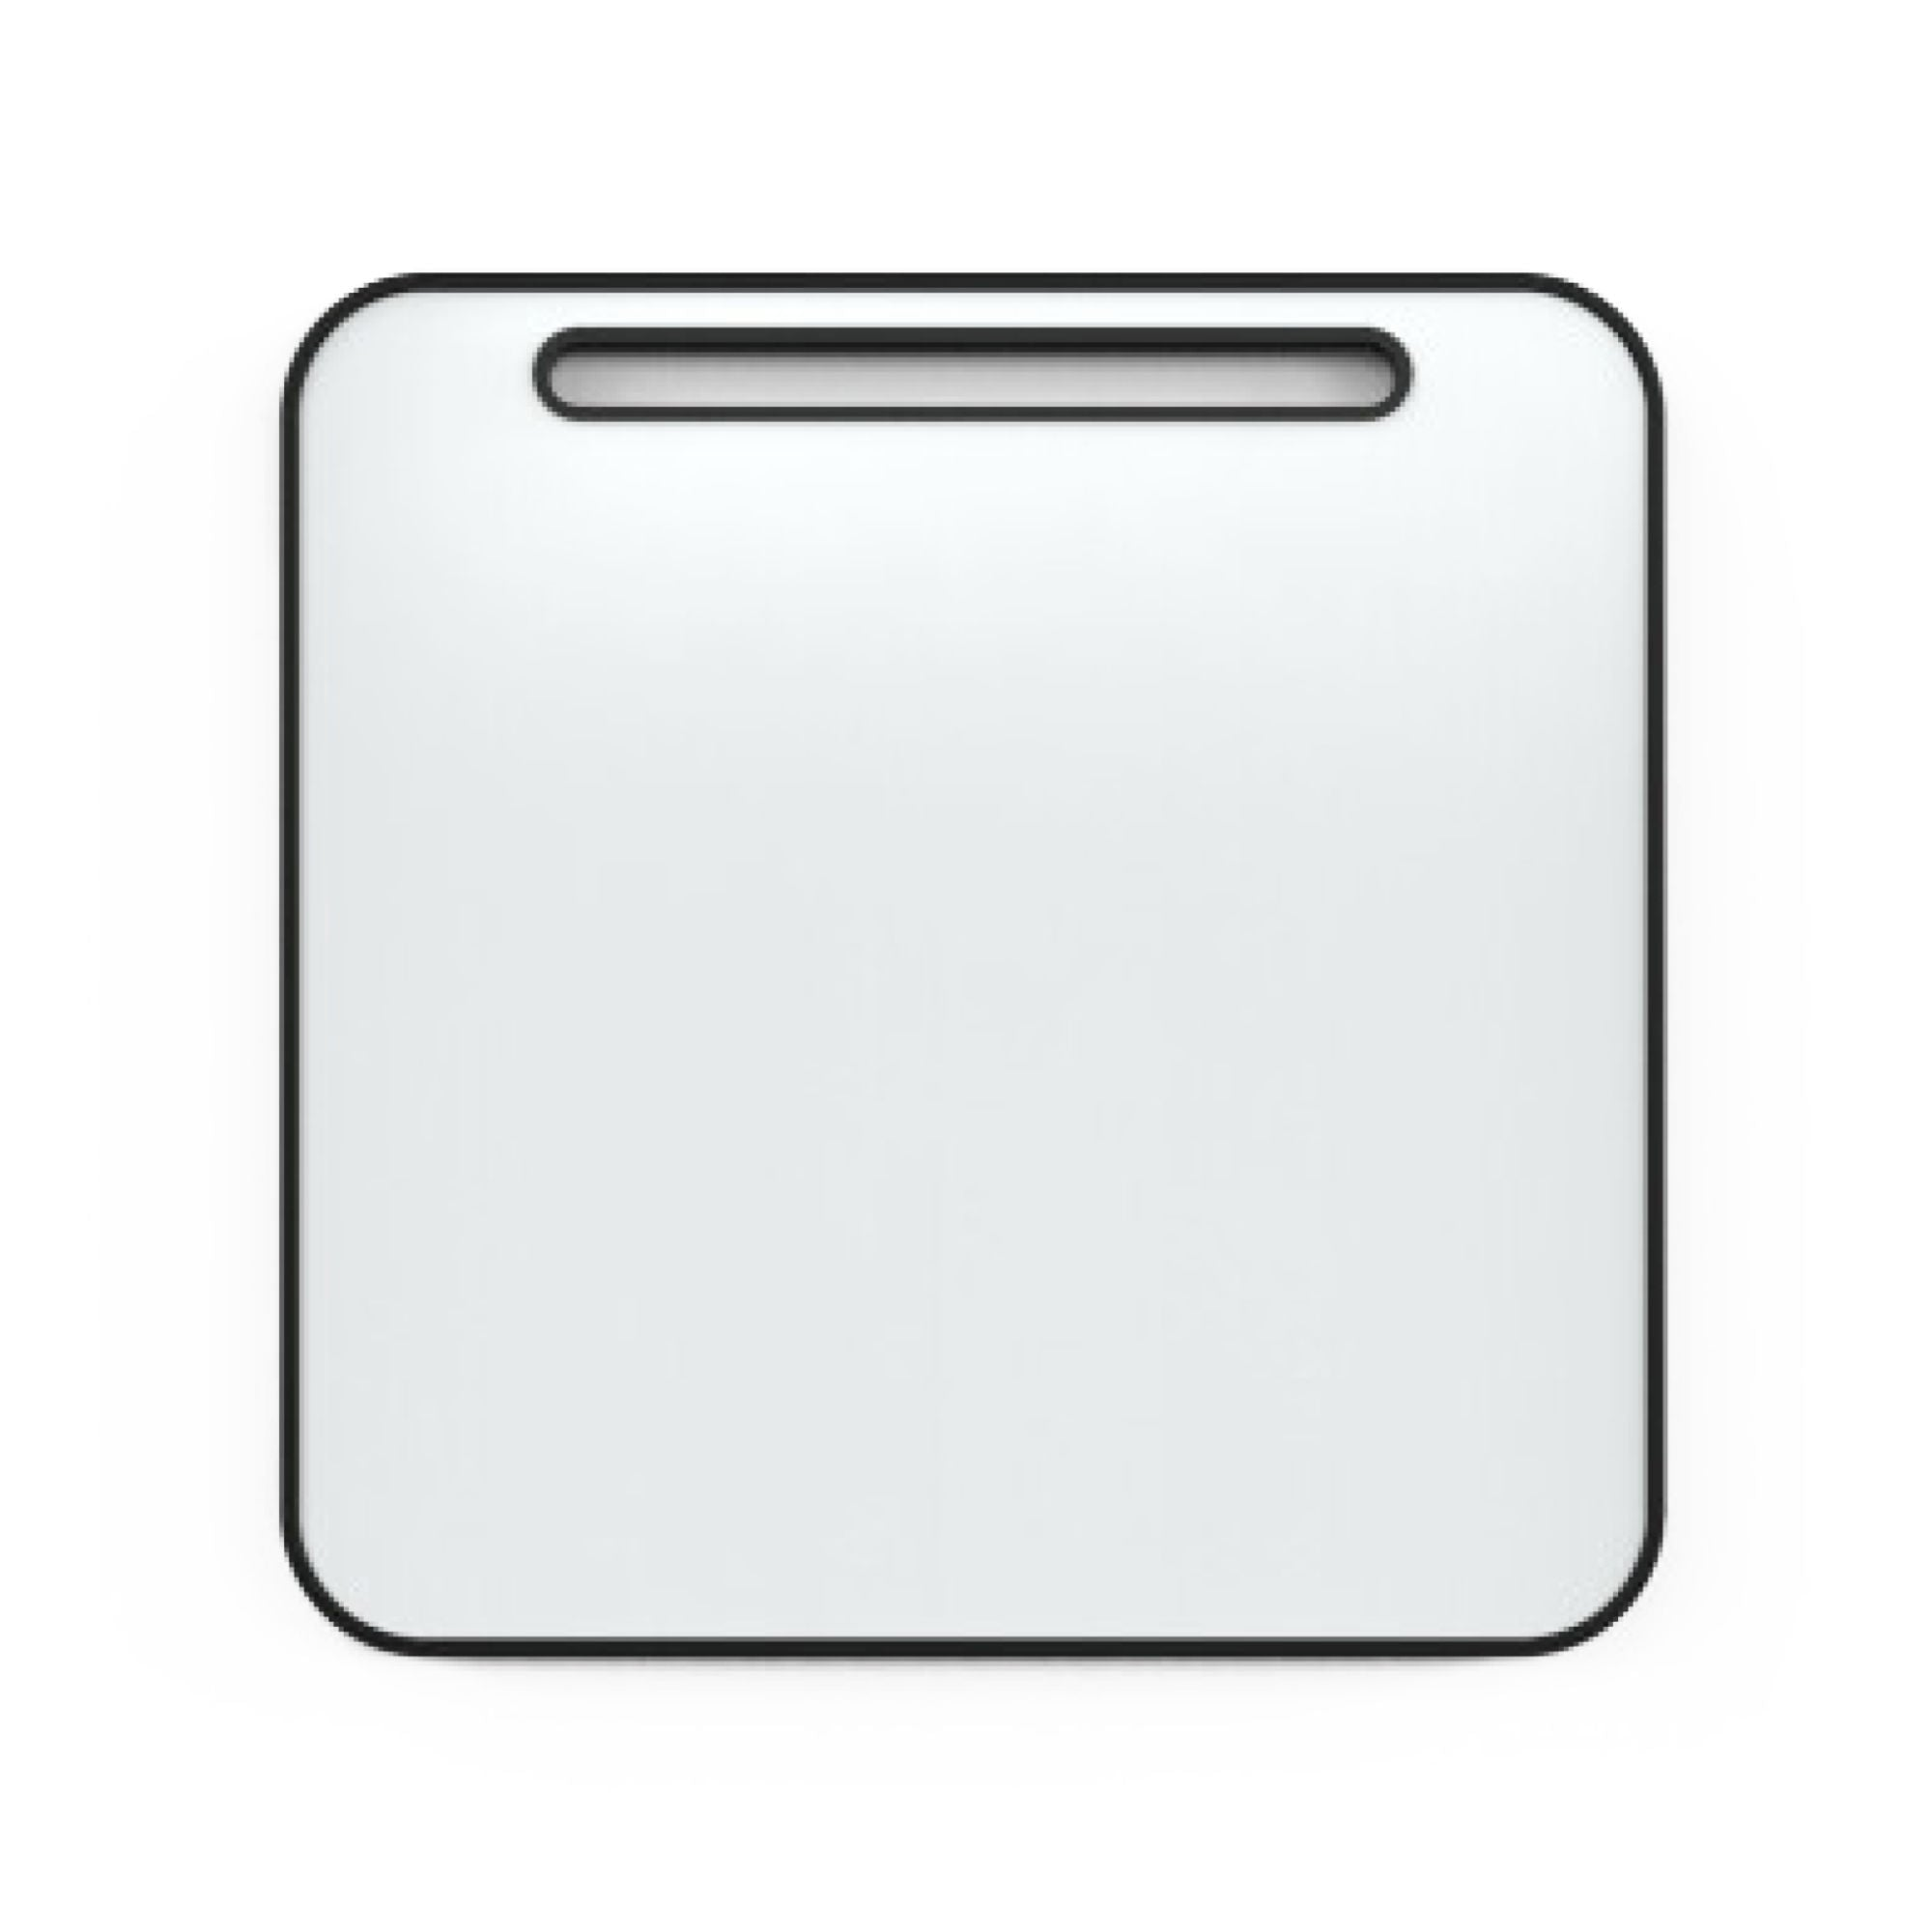 Lintex Note Lightweight Portable Whiteboard 80.5x80.5CM